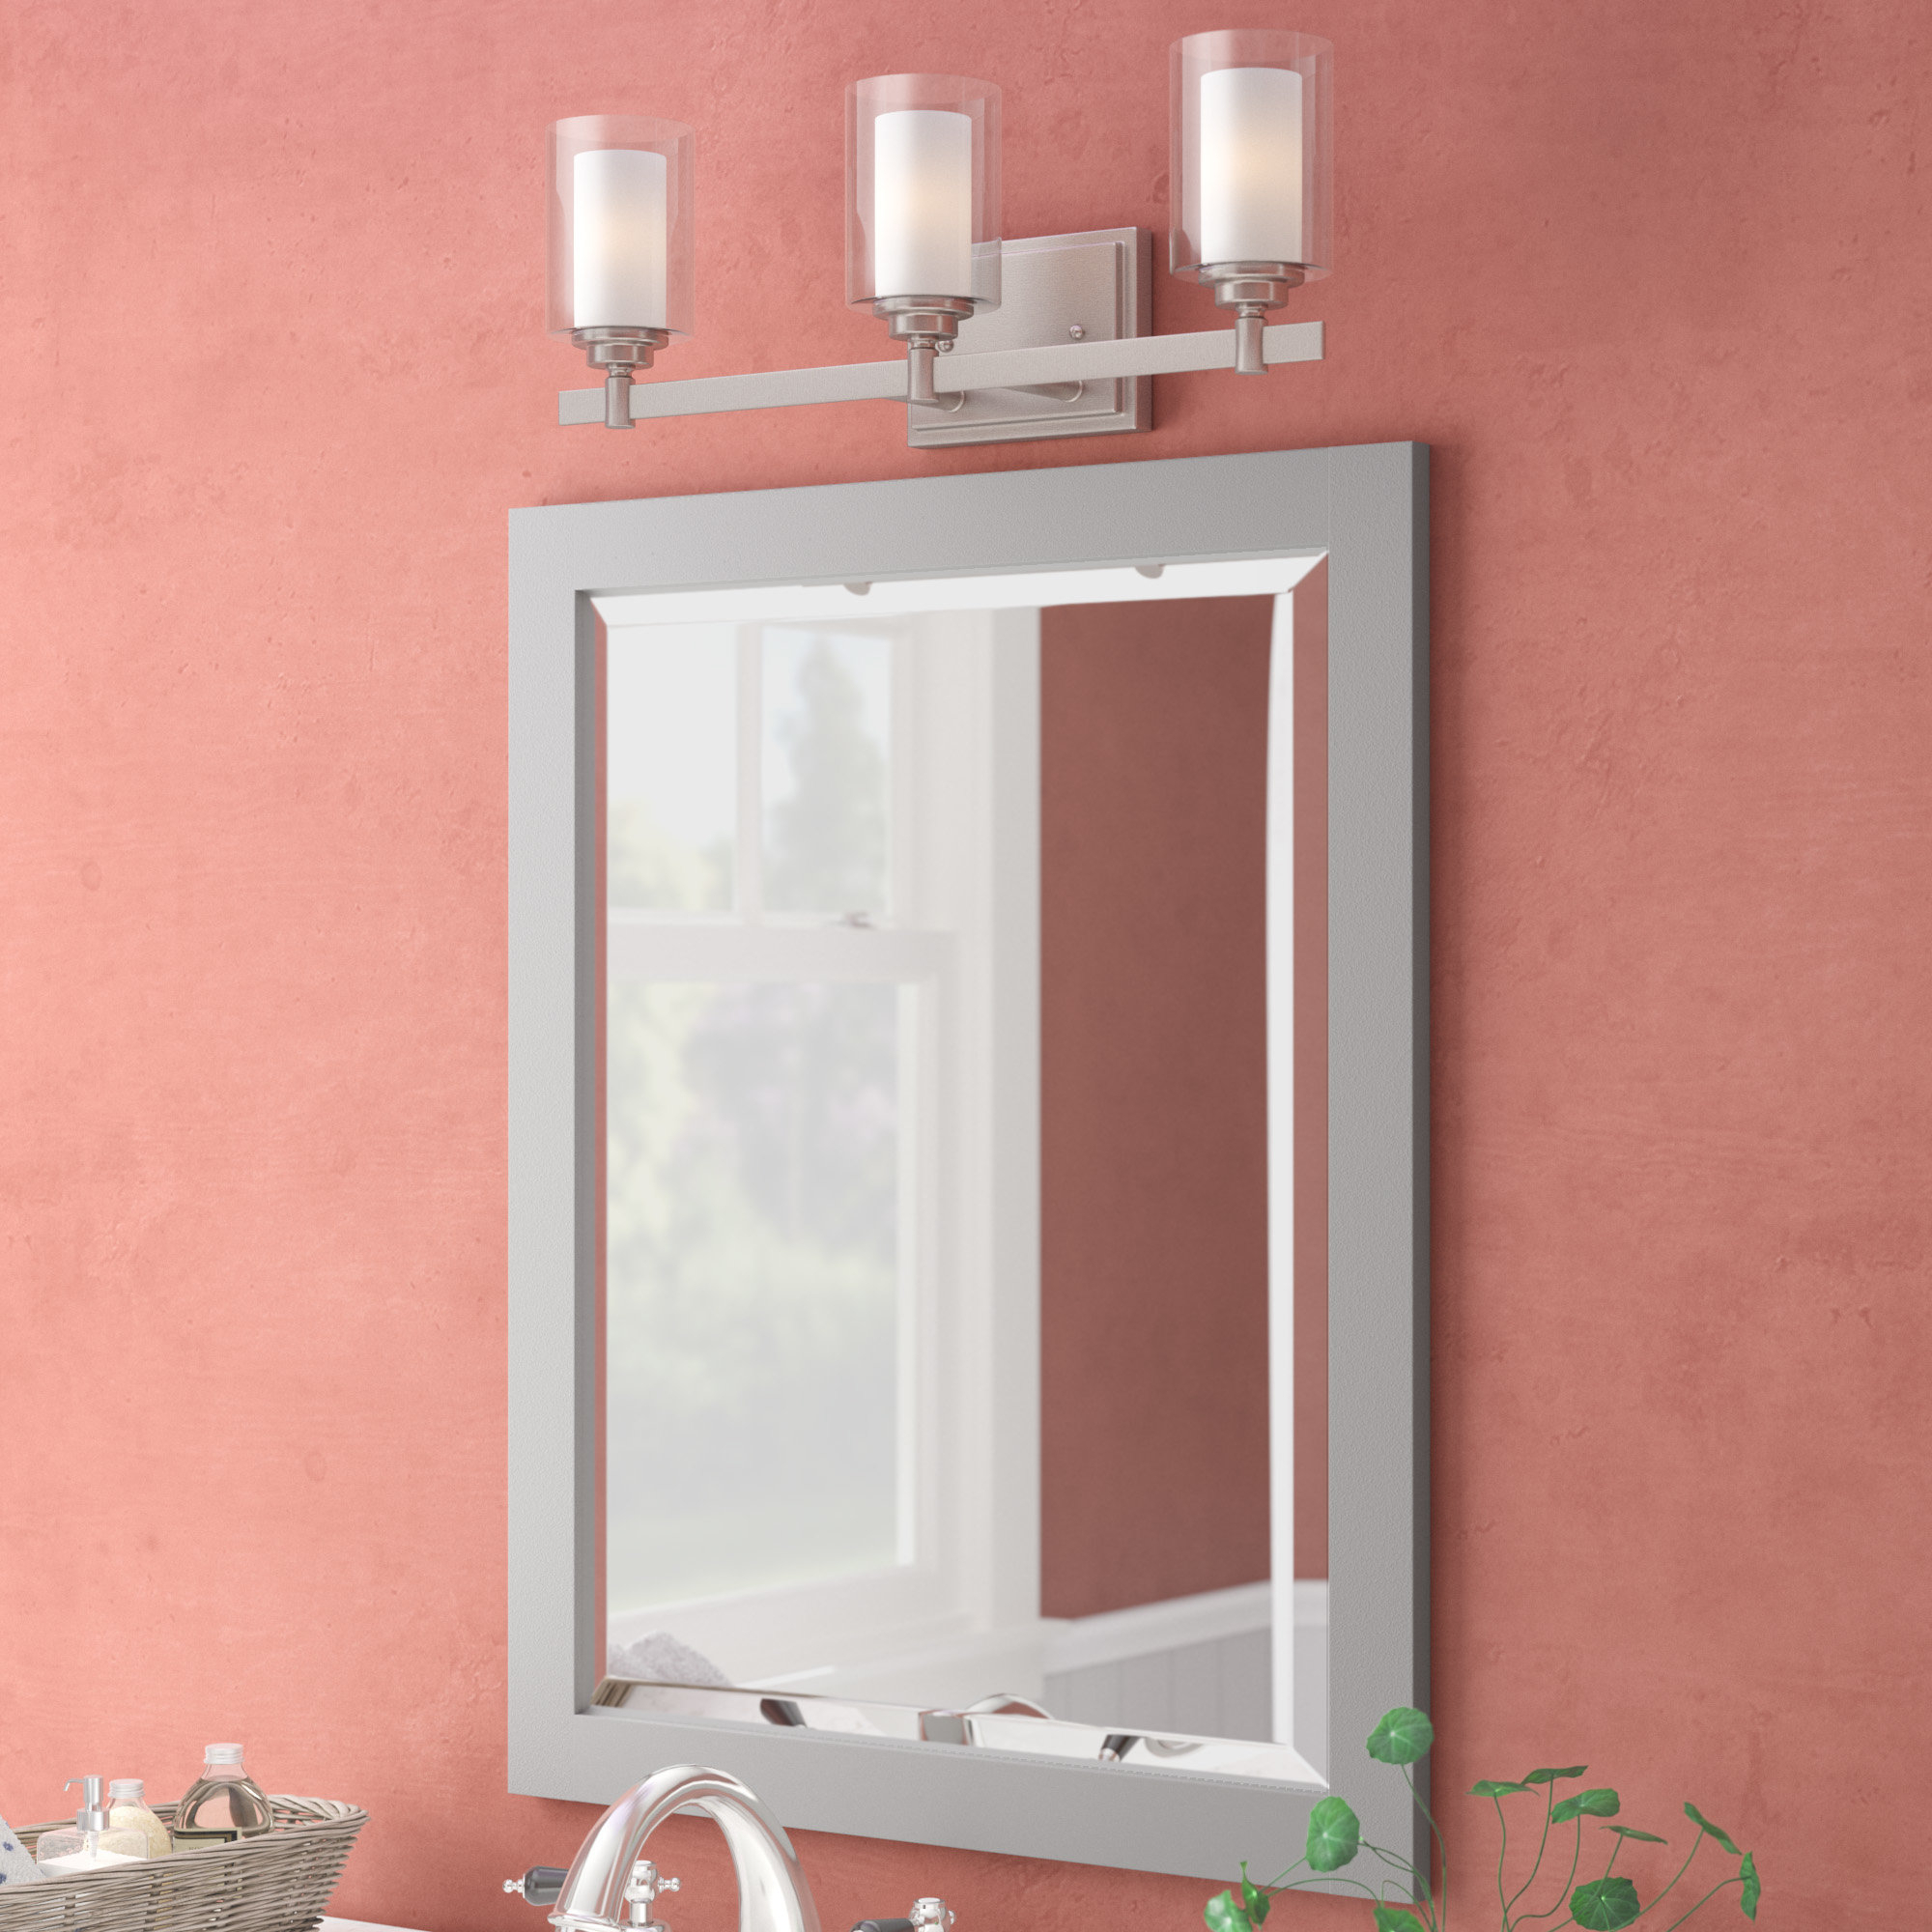 2020 Burgoyne Vanity Mirrors Inside Brixham Hanging Bathroom/vanity Mirror (Gallery 8 of 20)